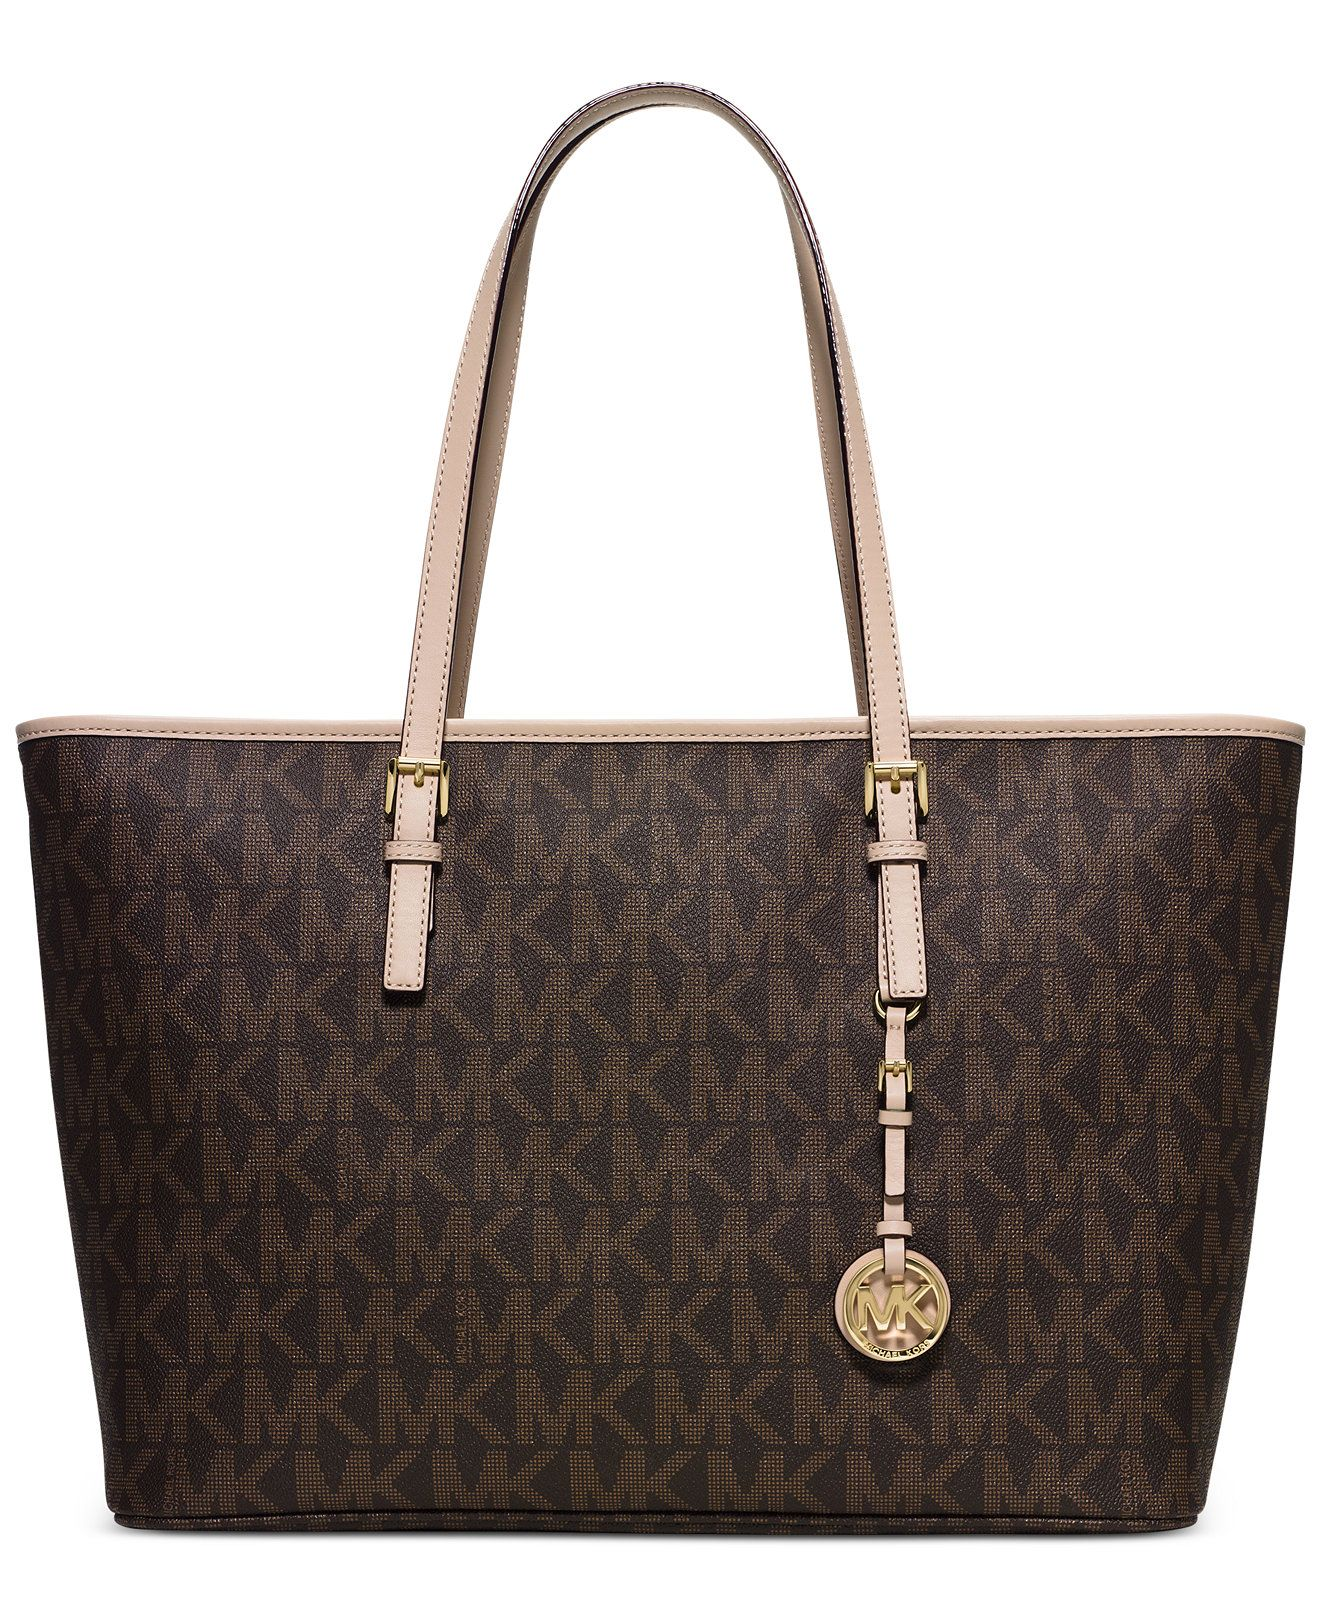 MICHAEL Michael Kors Jet Set Travel Medium Top Zip Multifunction Tote -  Handbags & Accessories -